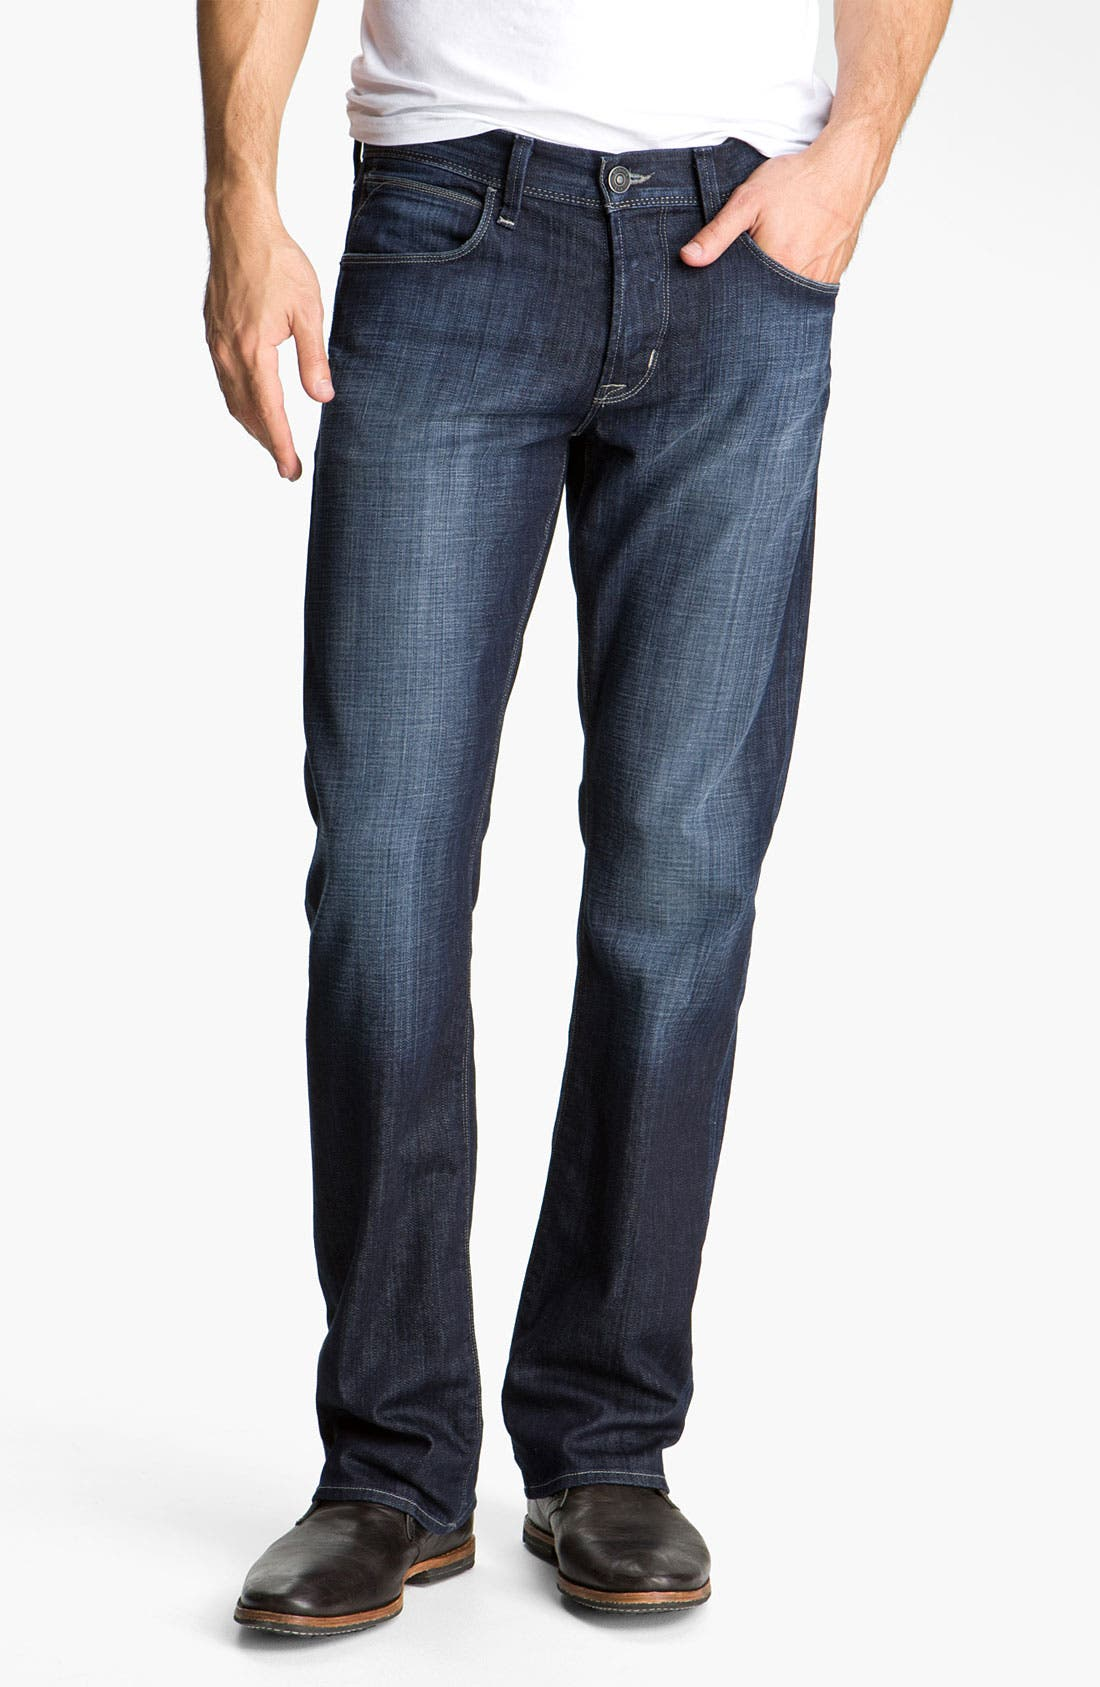 Alternate Image 1 Selected - Hudson Jeans 'Clifton' Bootcut Jeans (Wickham)